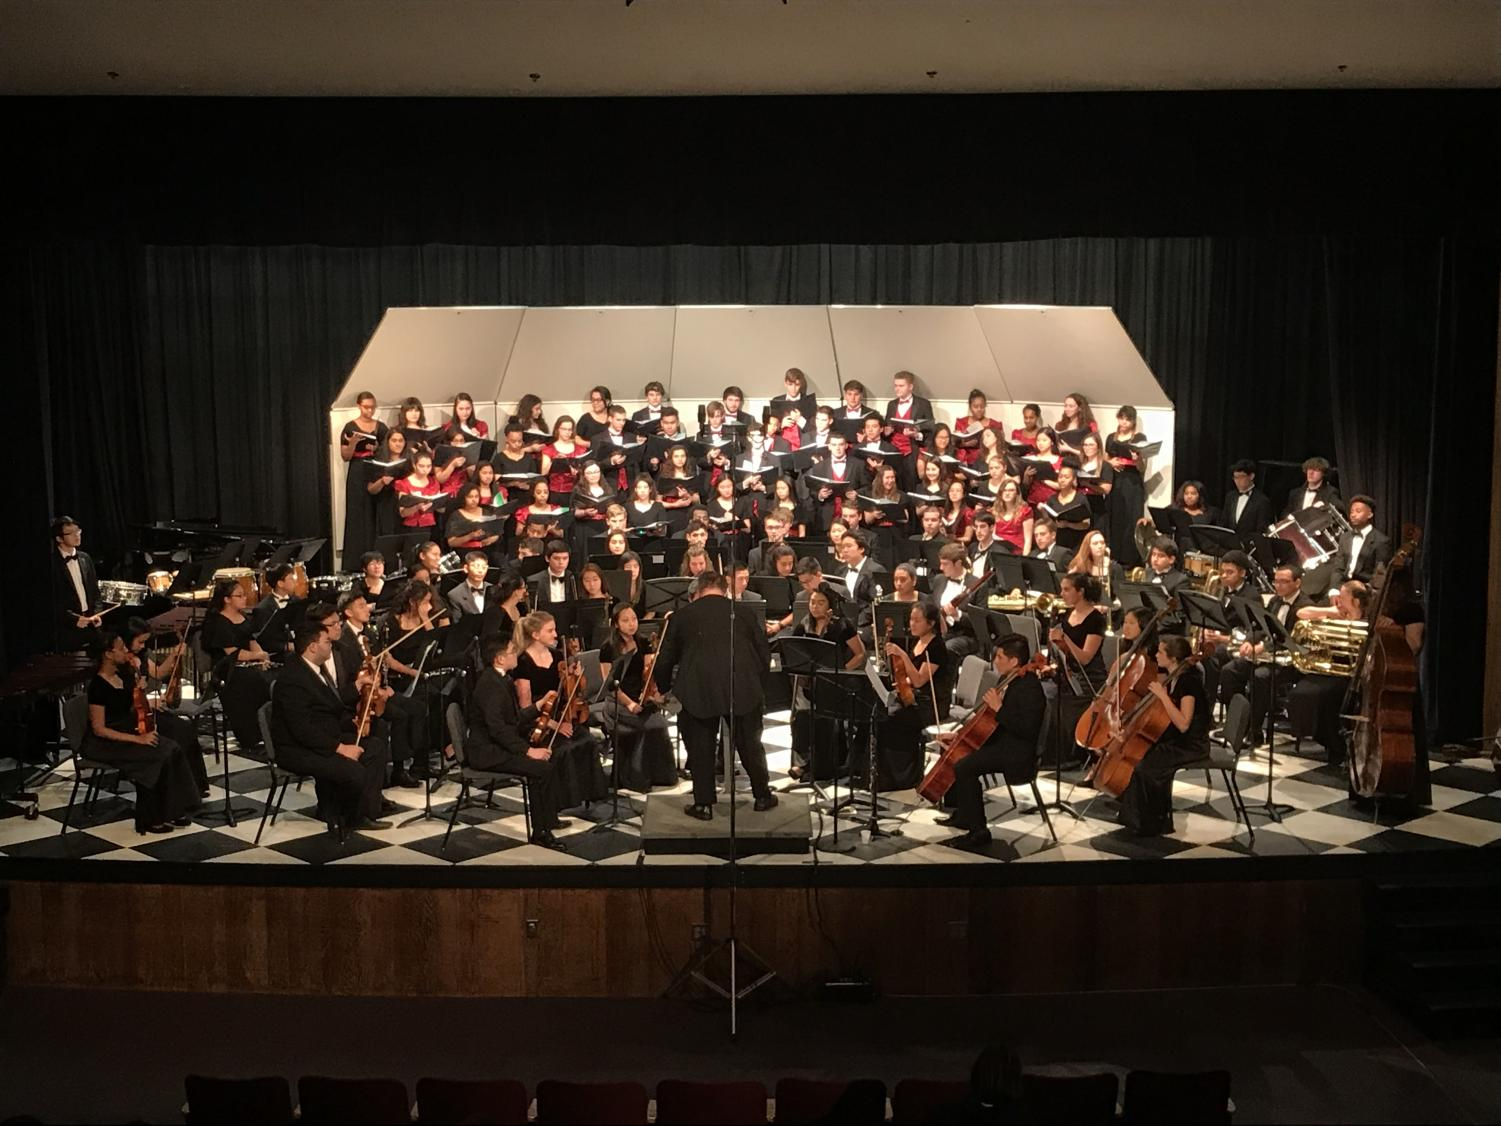 The Annandale Singers, Combined Women's Chorus, Philharmonic Strings and Wind Ensemble perform at the Trilogy Ensemble Concert.